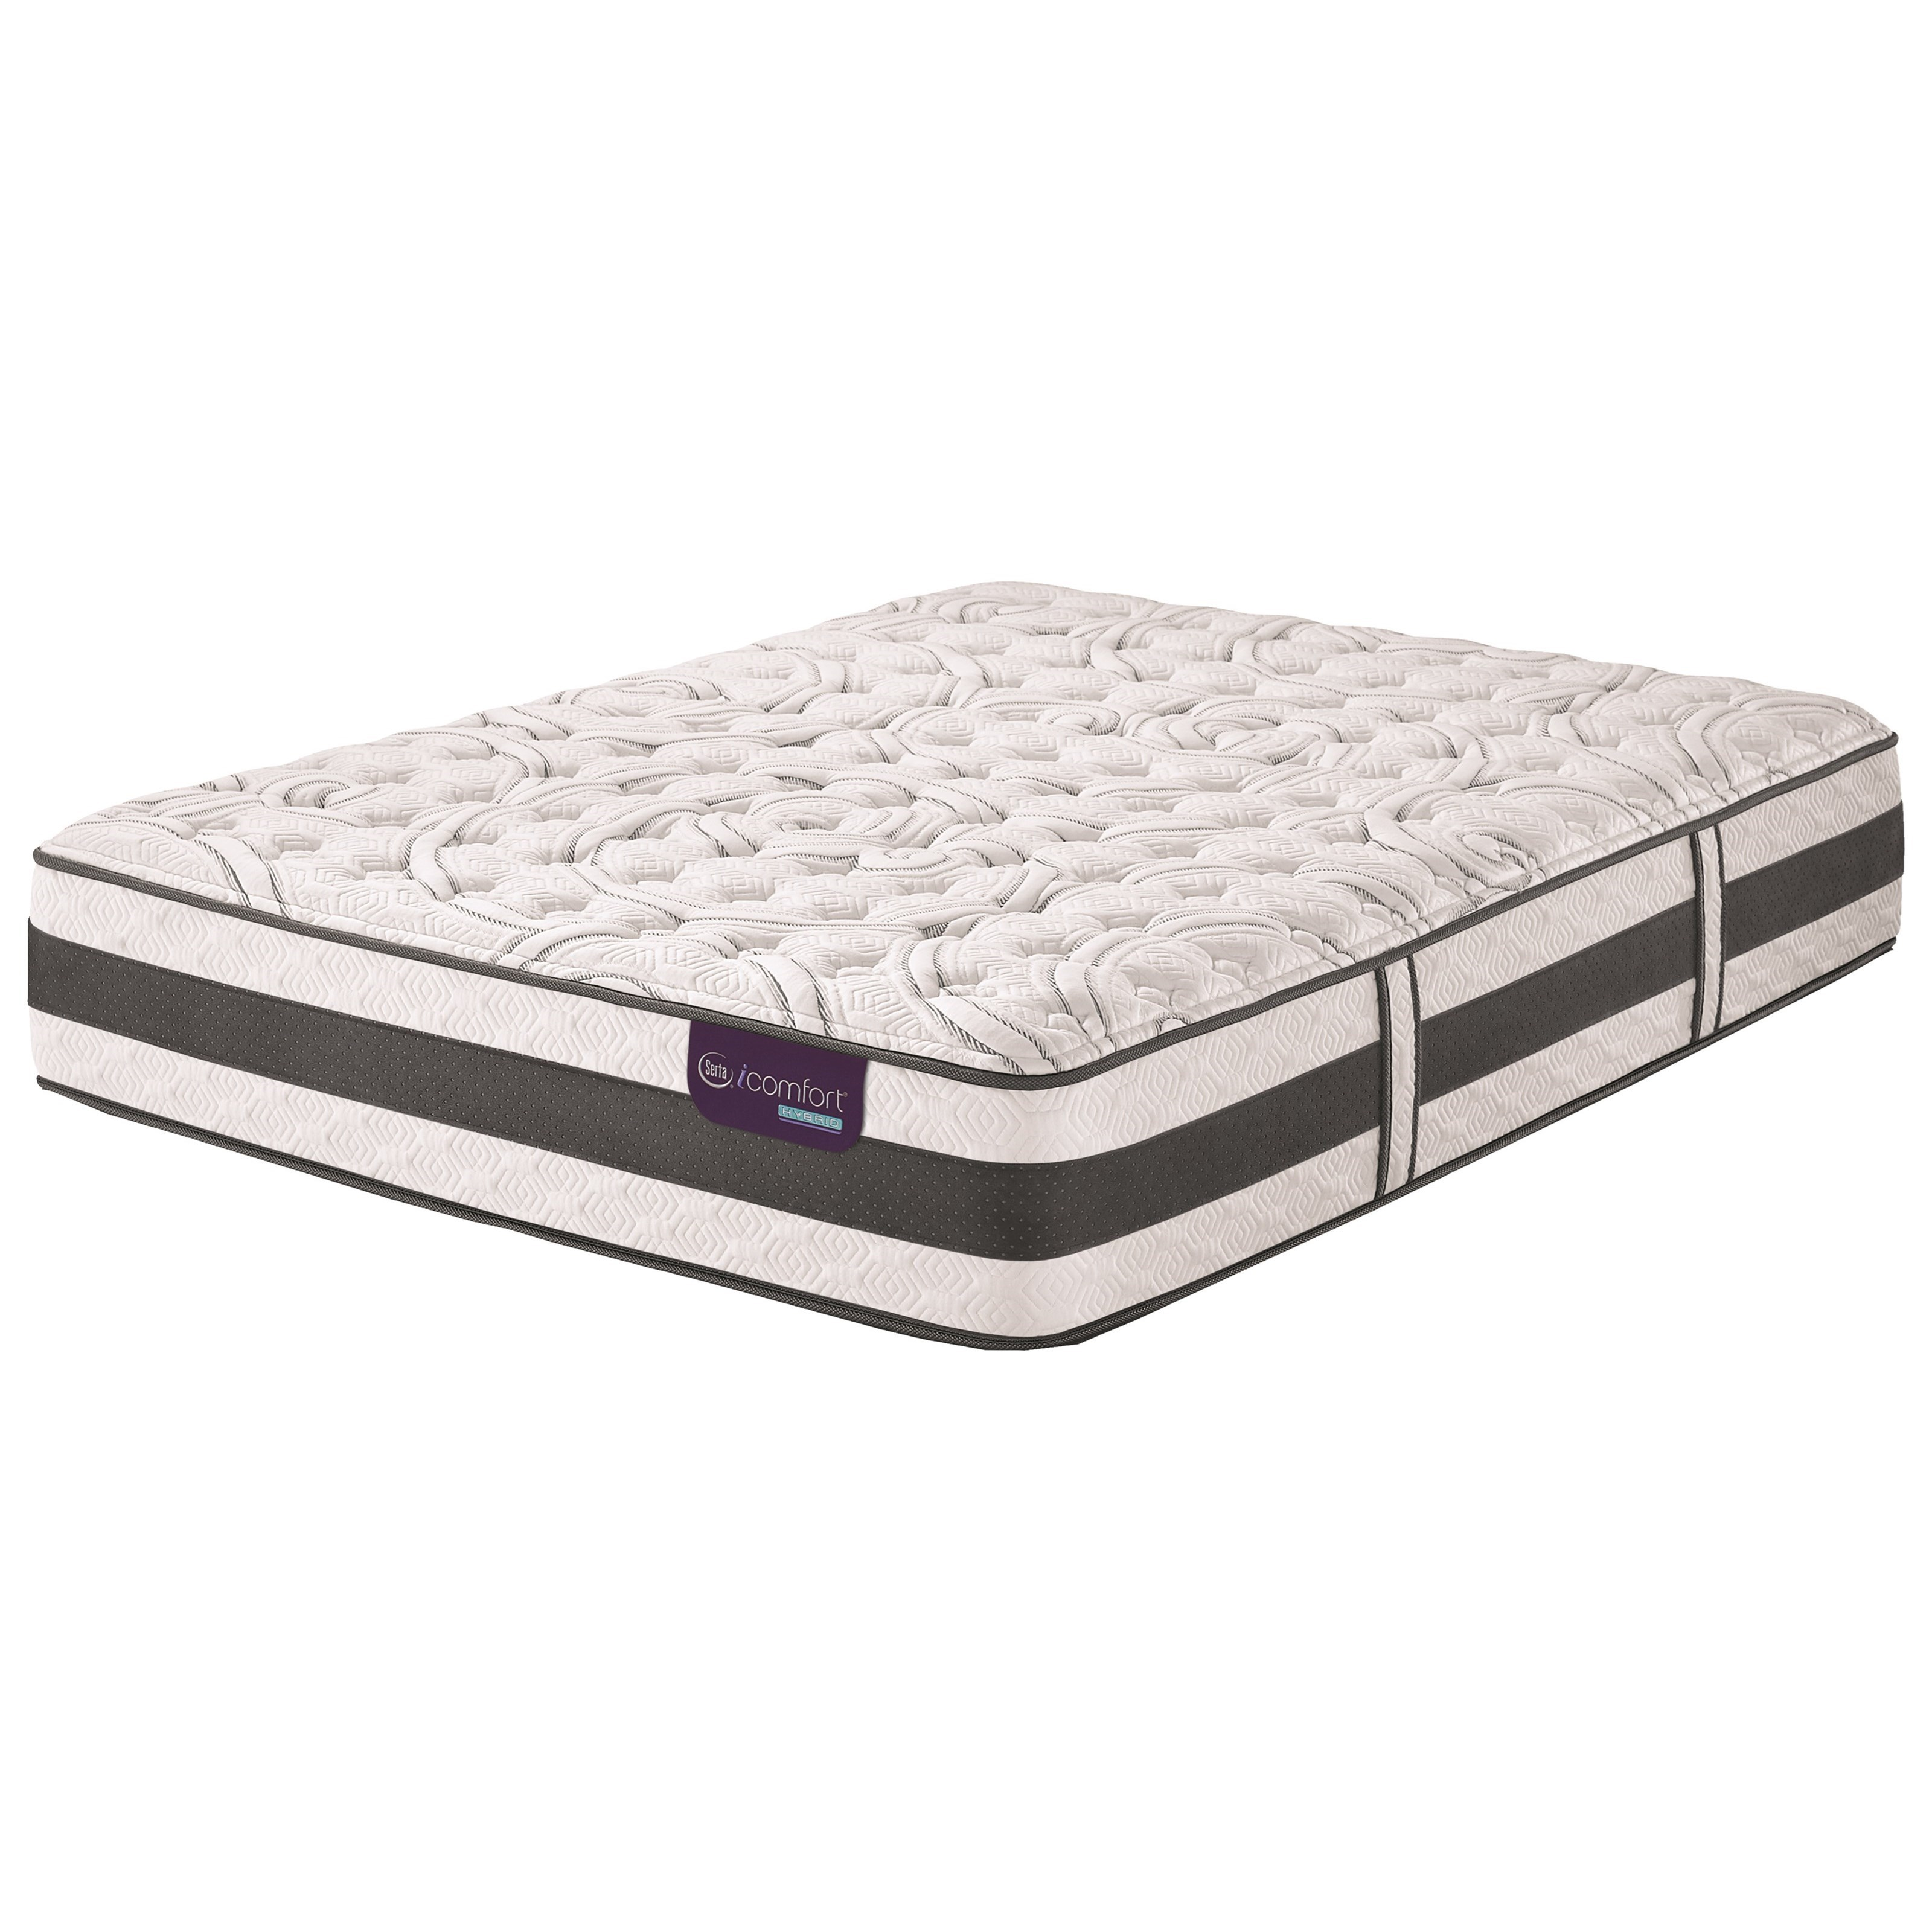 Serta iComfort Hybrid Recognition Cal King Extra Firm Hybrid Quilted Mattress - Item Number: RecgntnExtFirm-CK